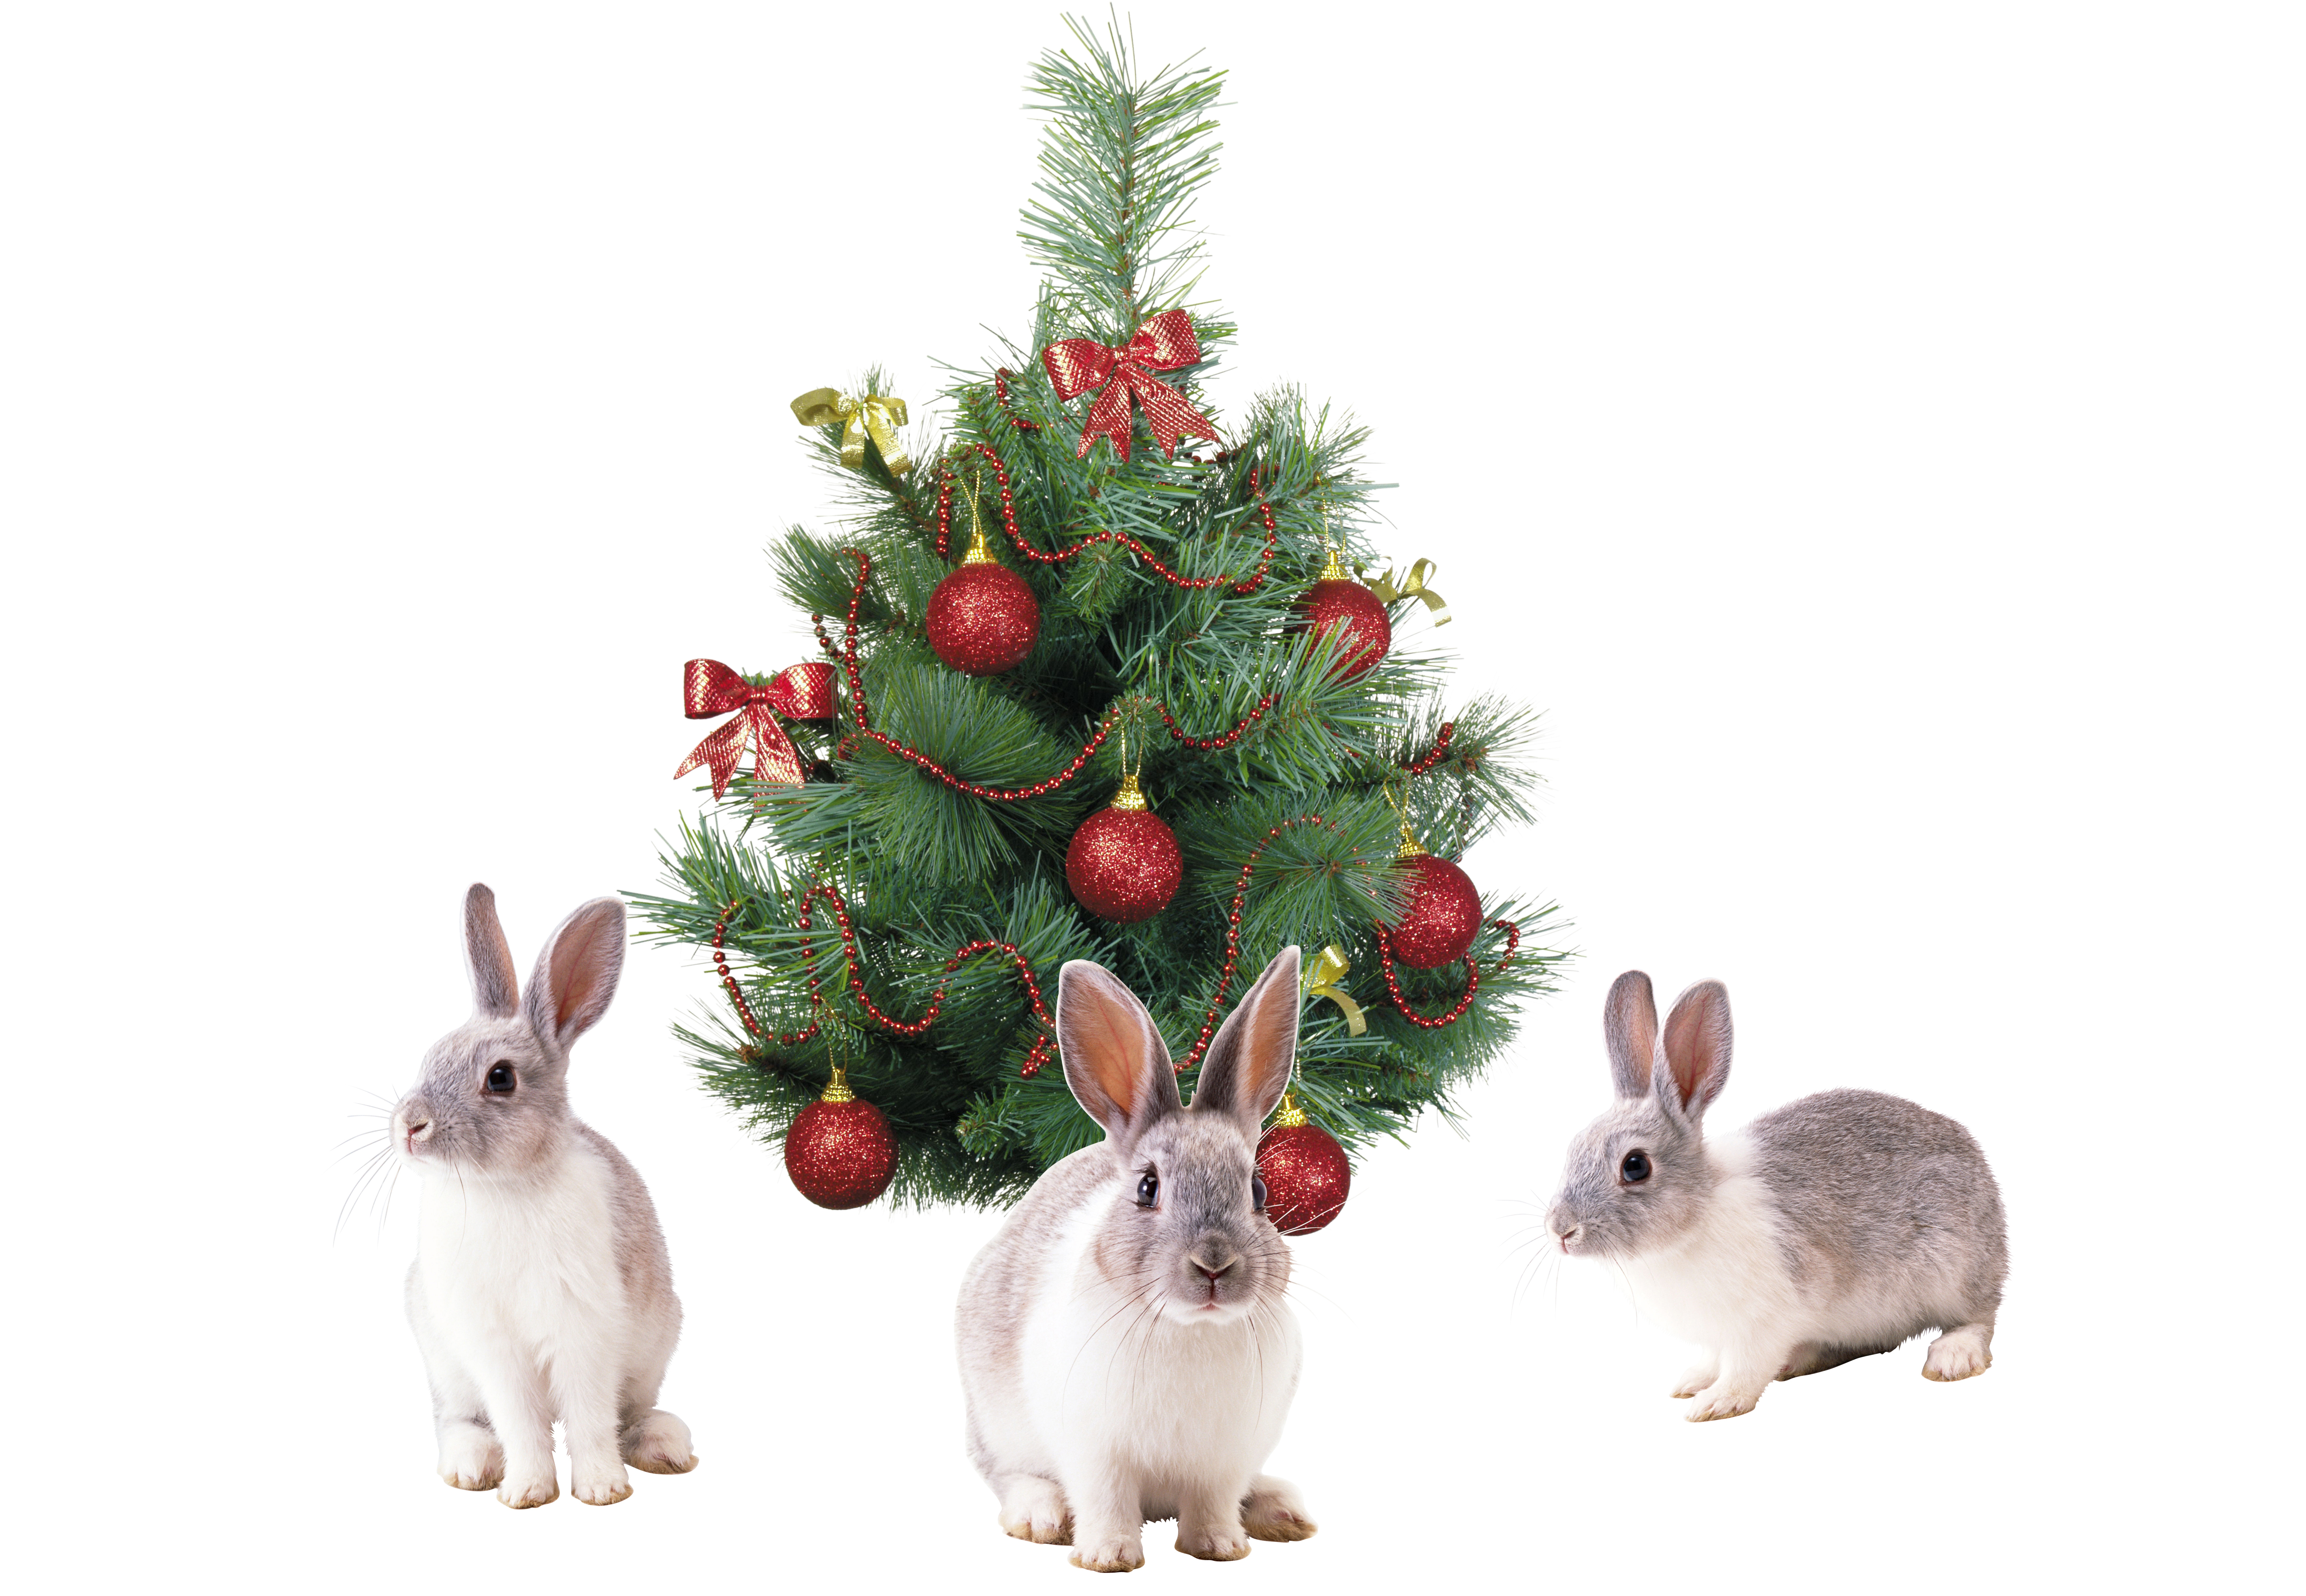 Christmas bunnies photo